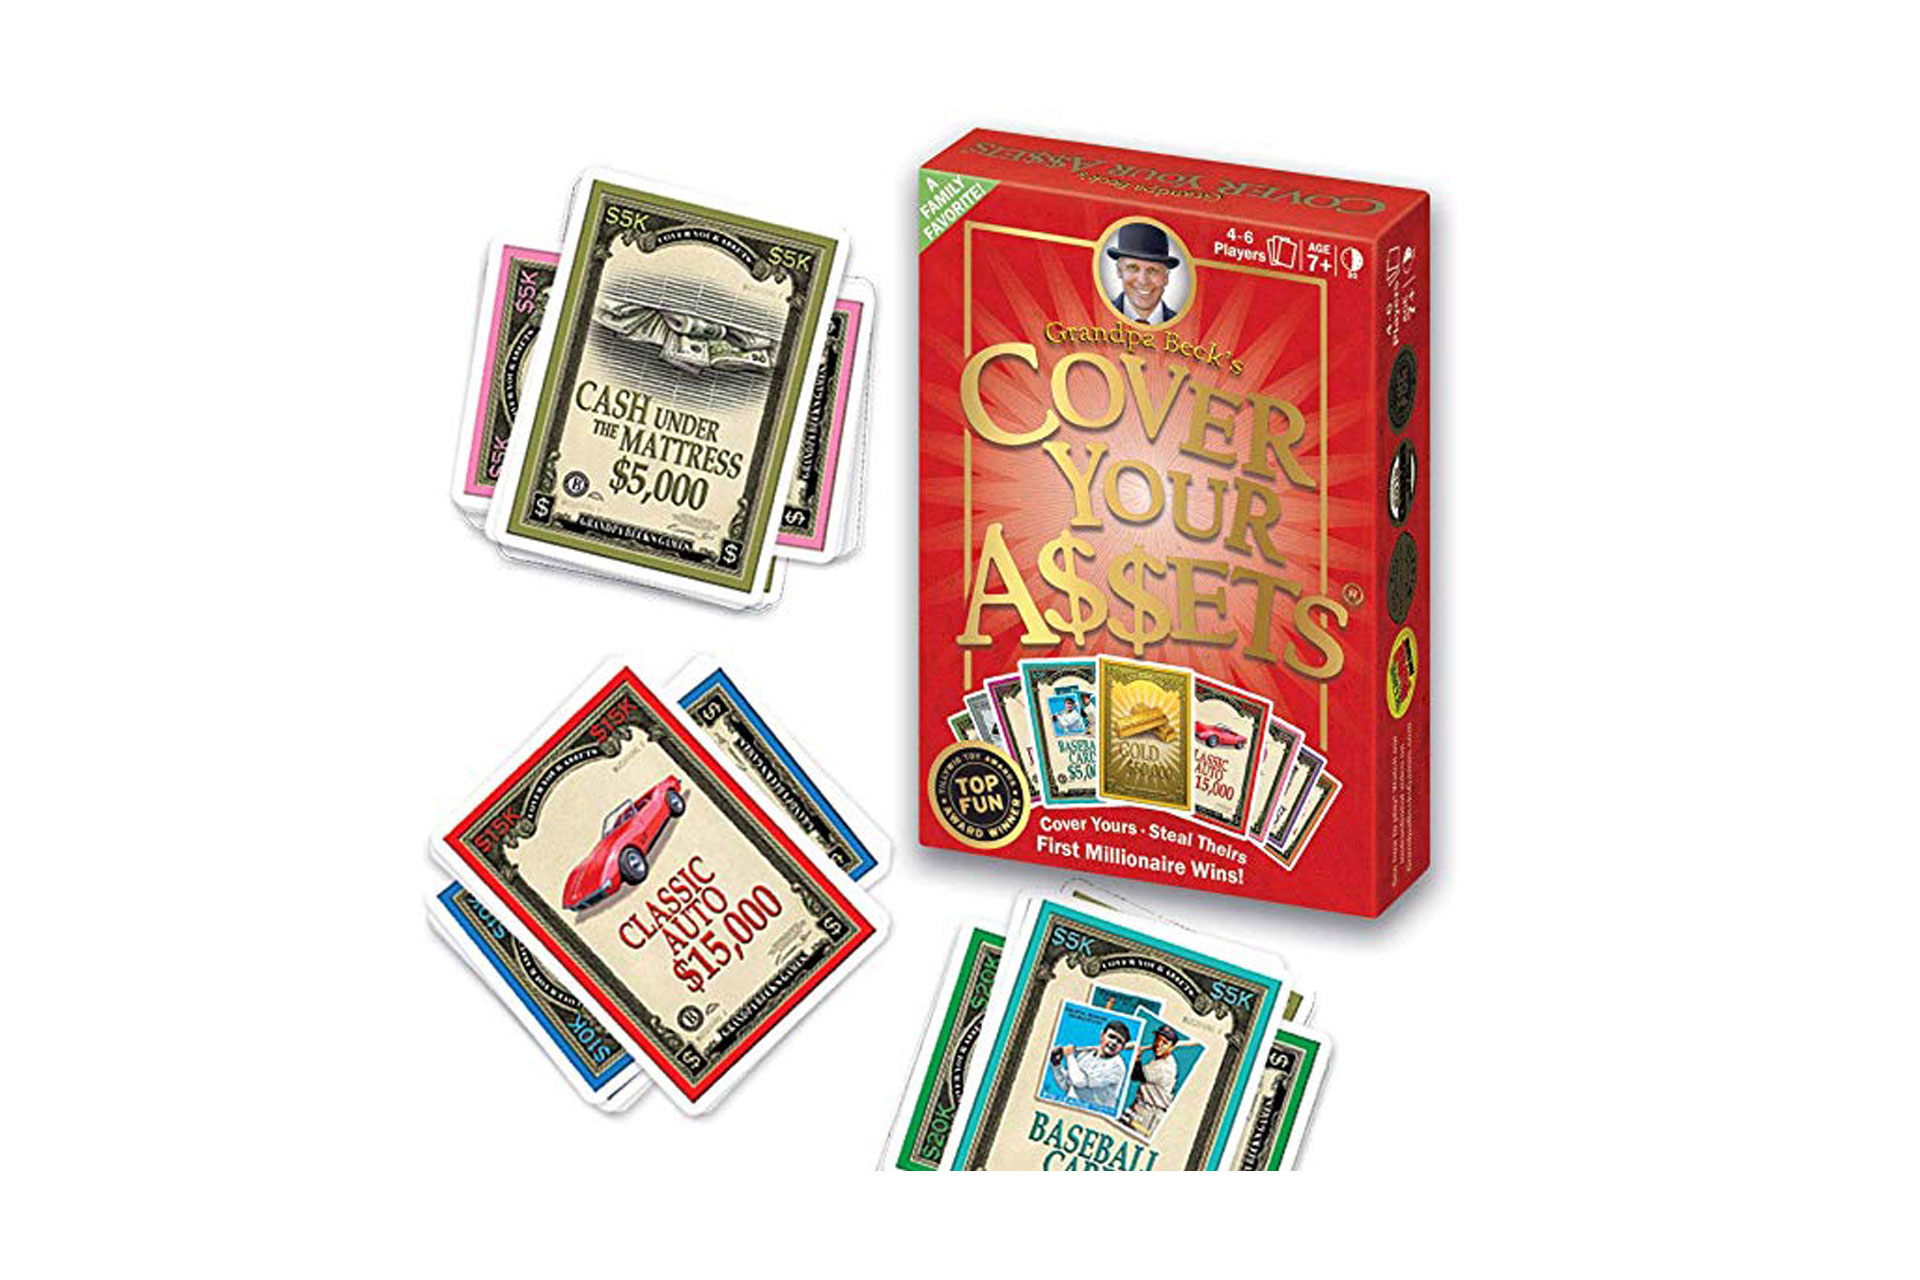 Cover Your Assets Card Game; Courtesy of Amazon